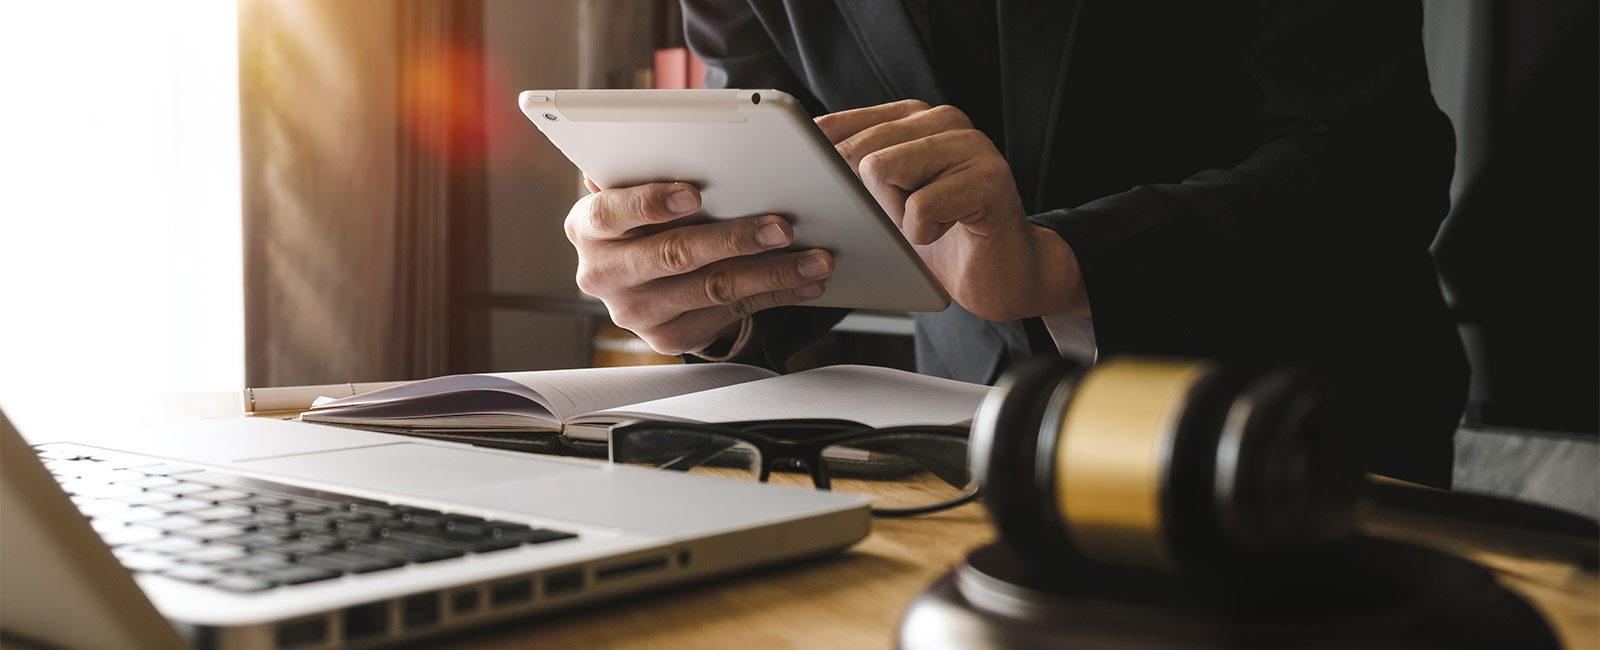 Man using tablet with gavel on table